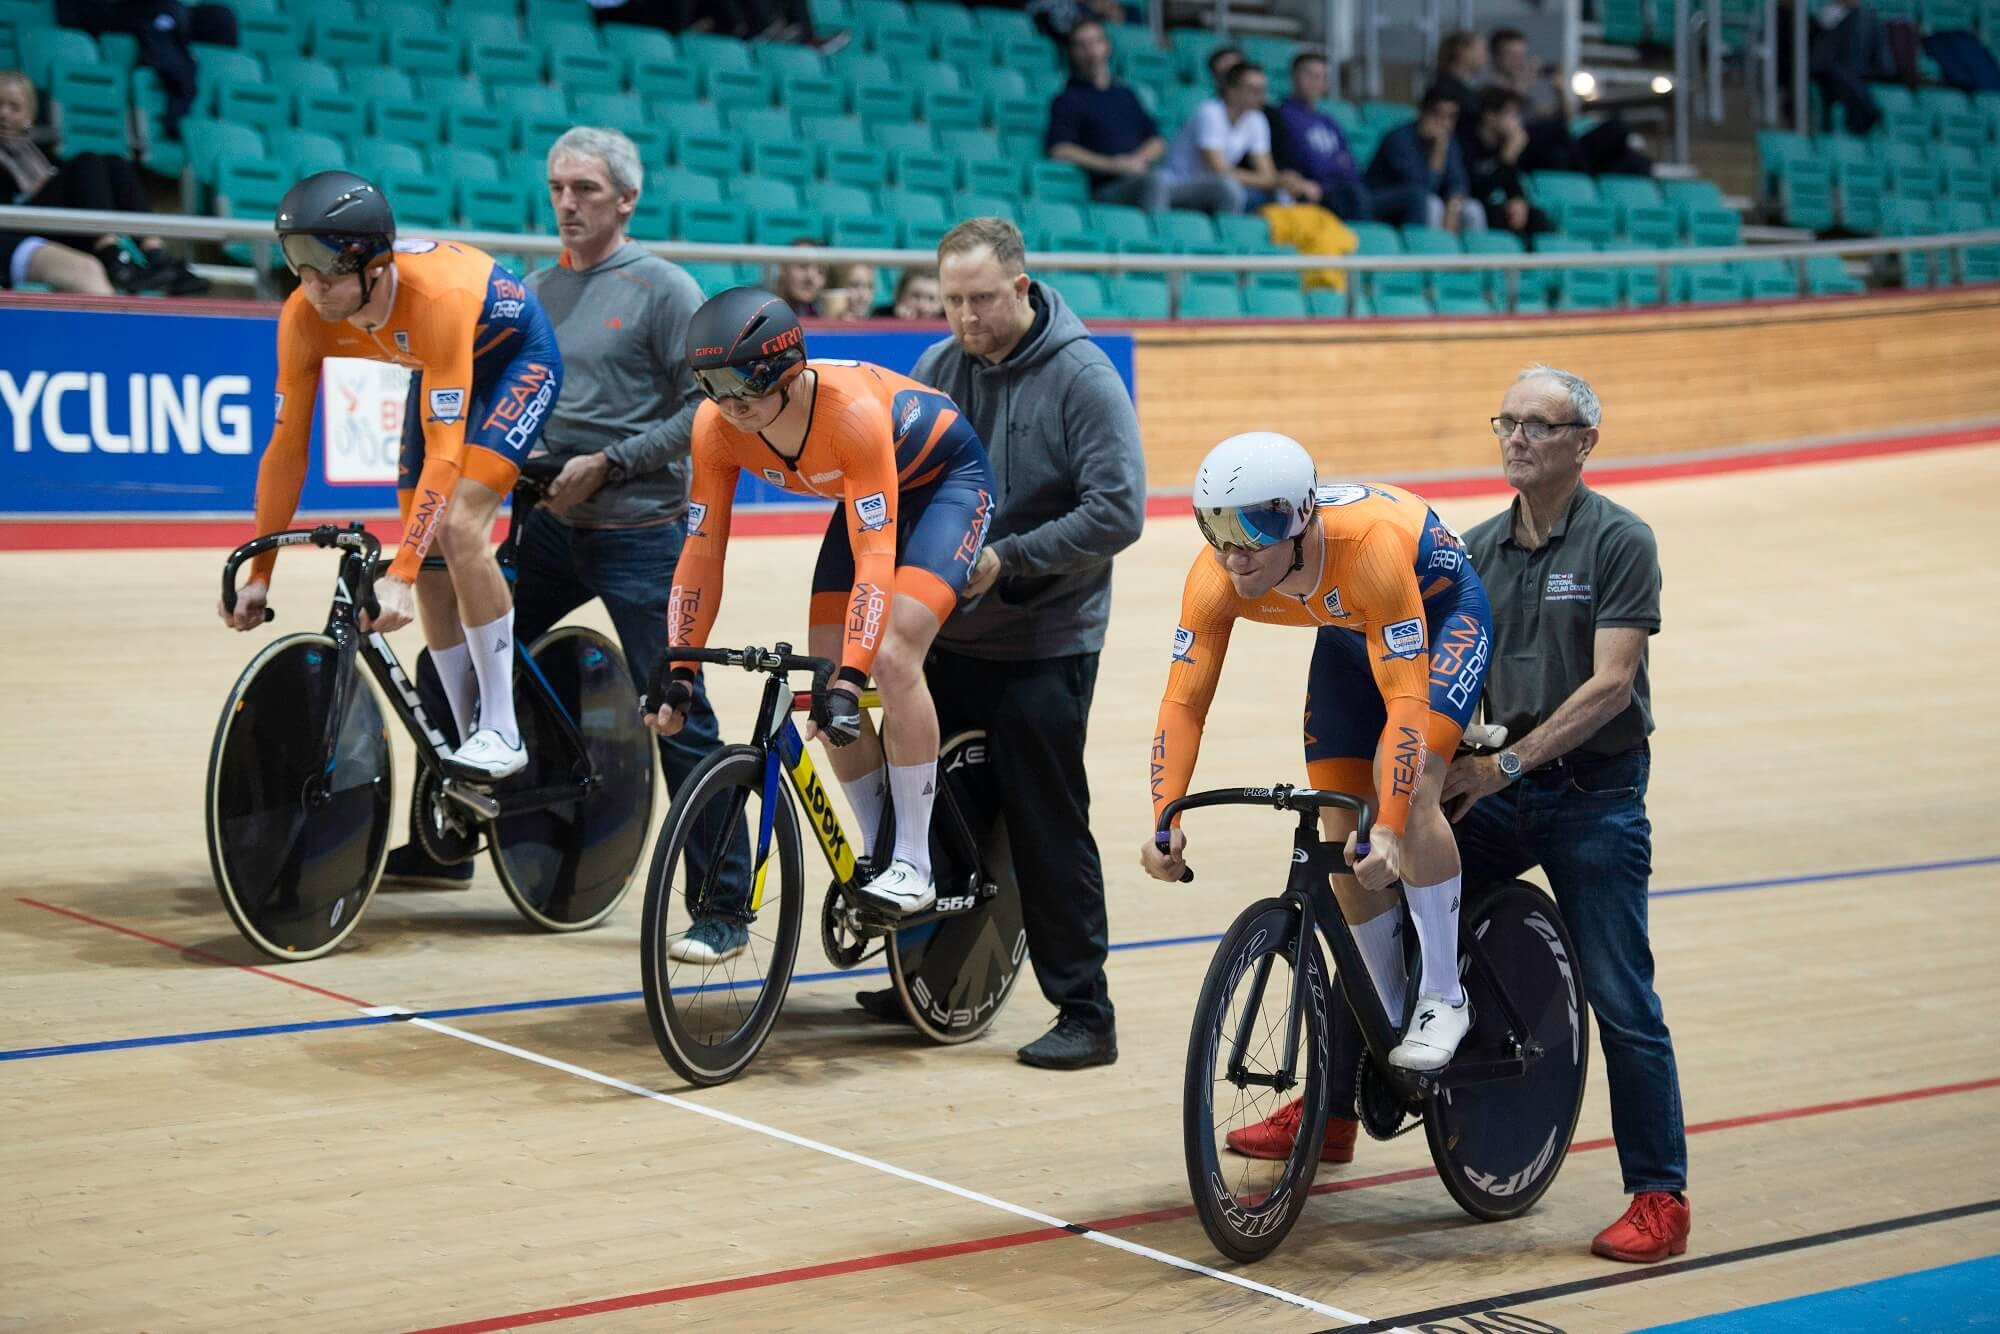 Three track cyclists at start line of race